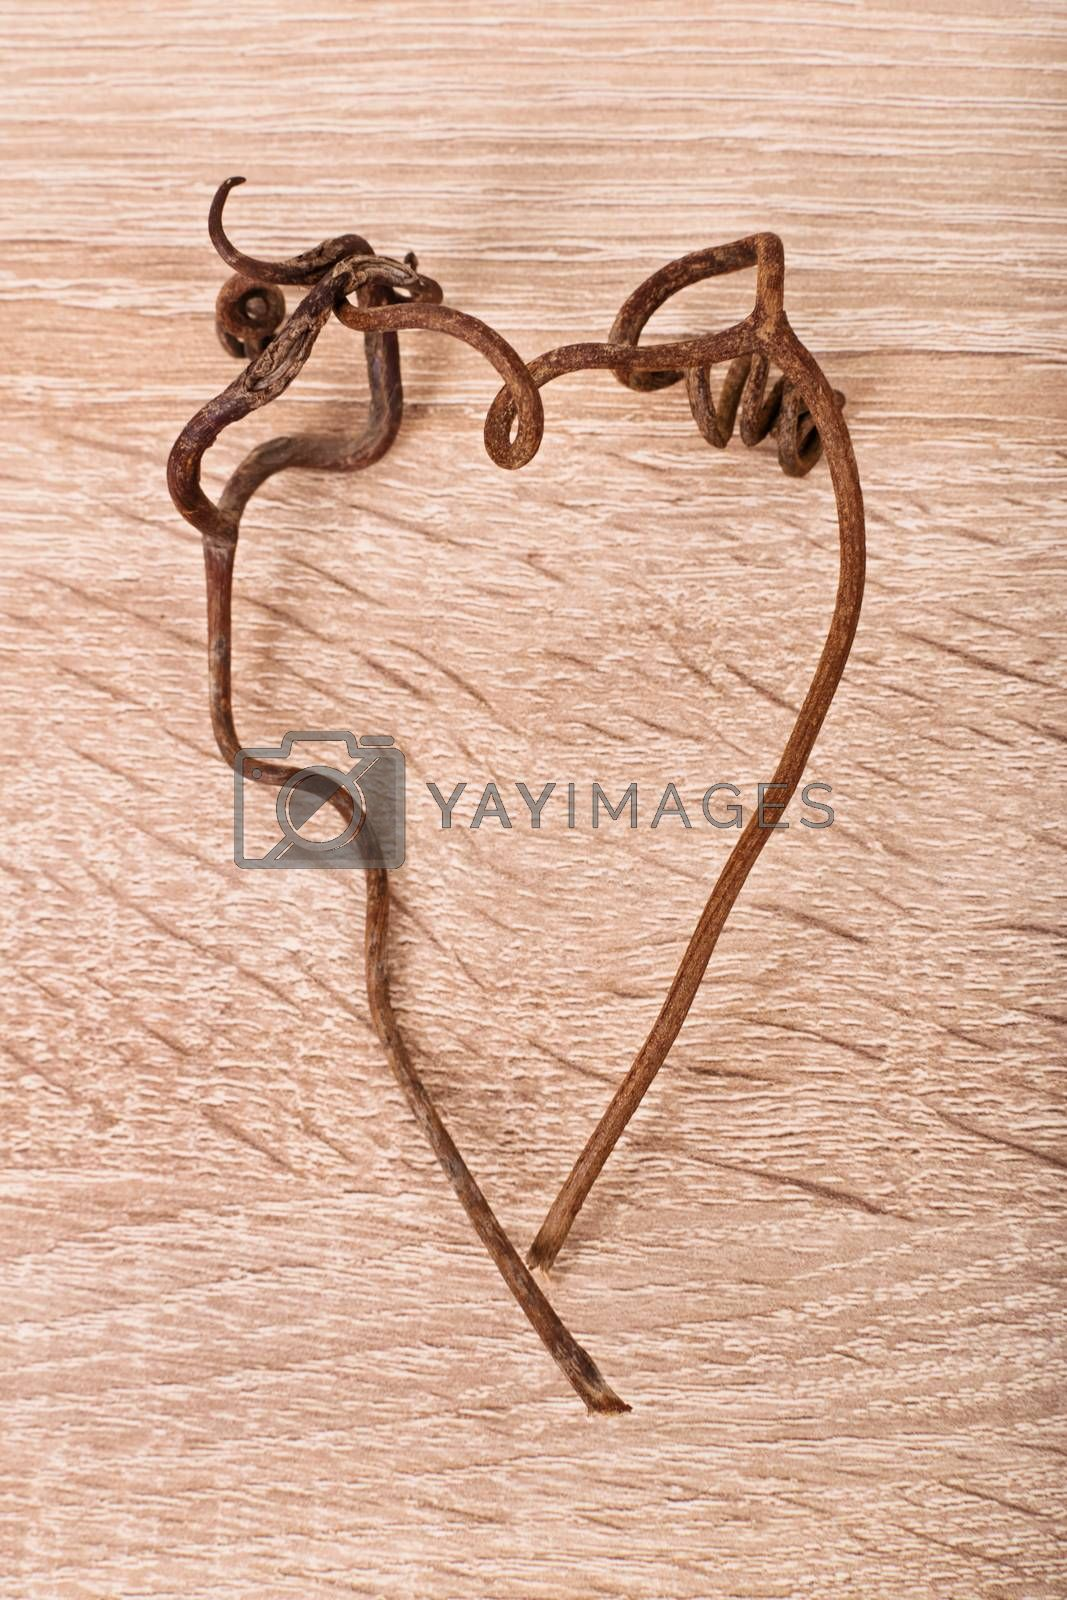 Withered heart. Heart shape made of vines on textured wooden background.